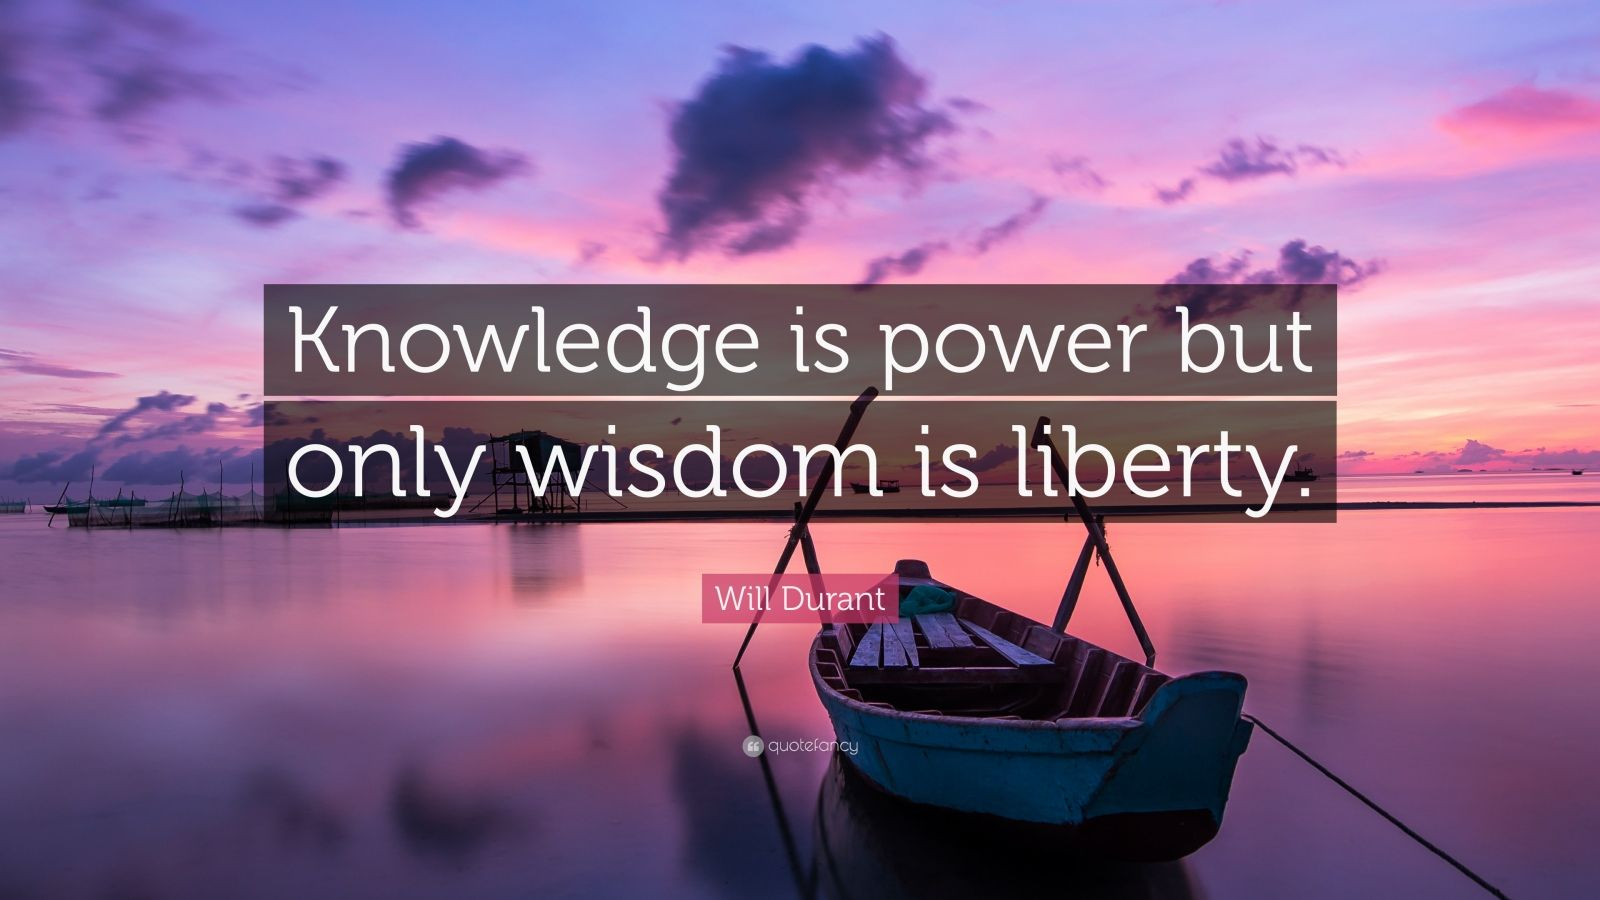 Business Success Quotes Wallpaper Will Durant Quote Knowledge Is Power But Only Wisdom Is